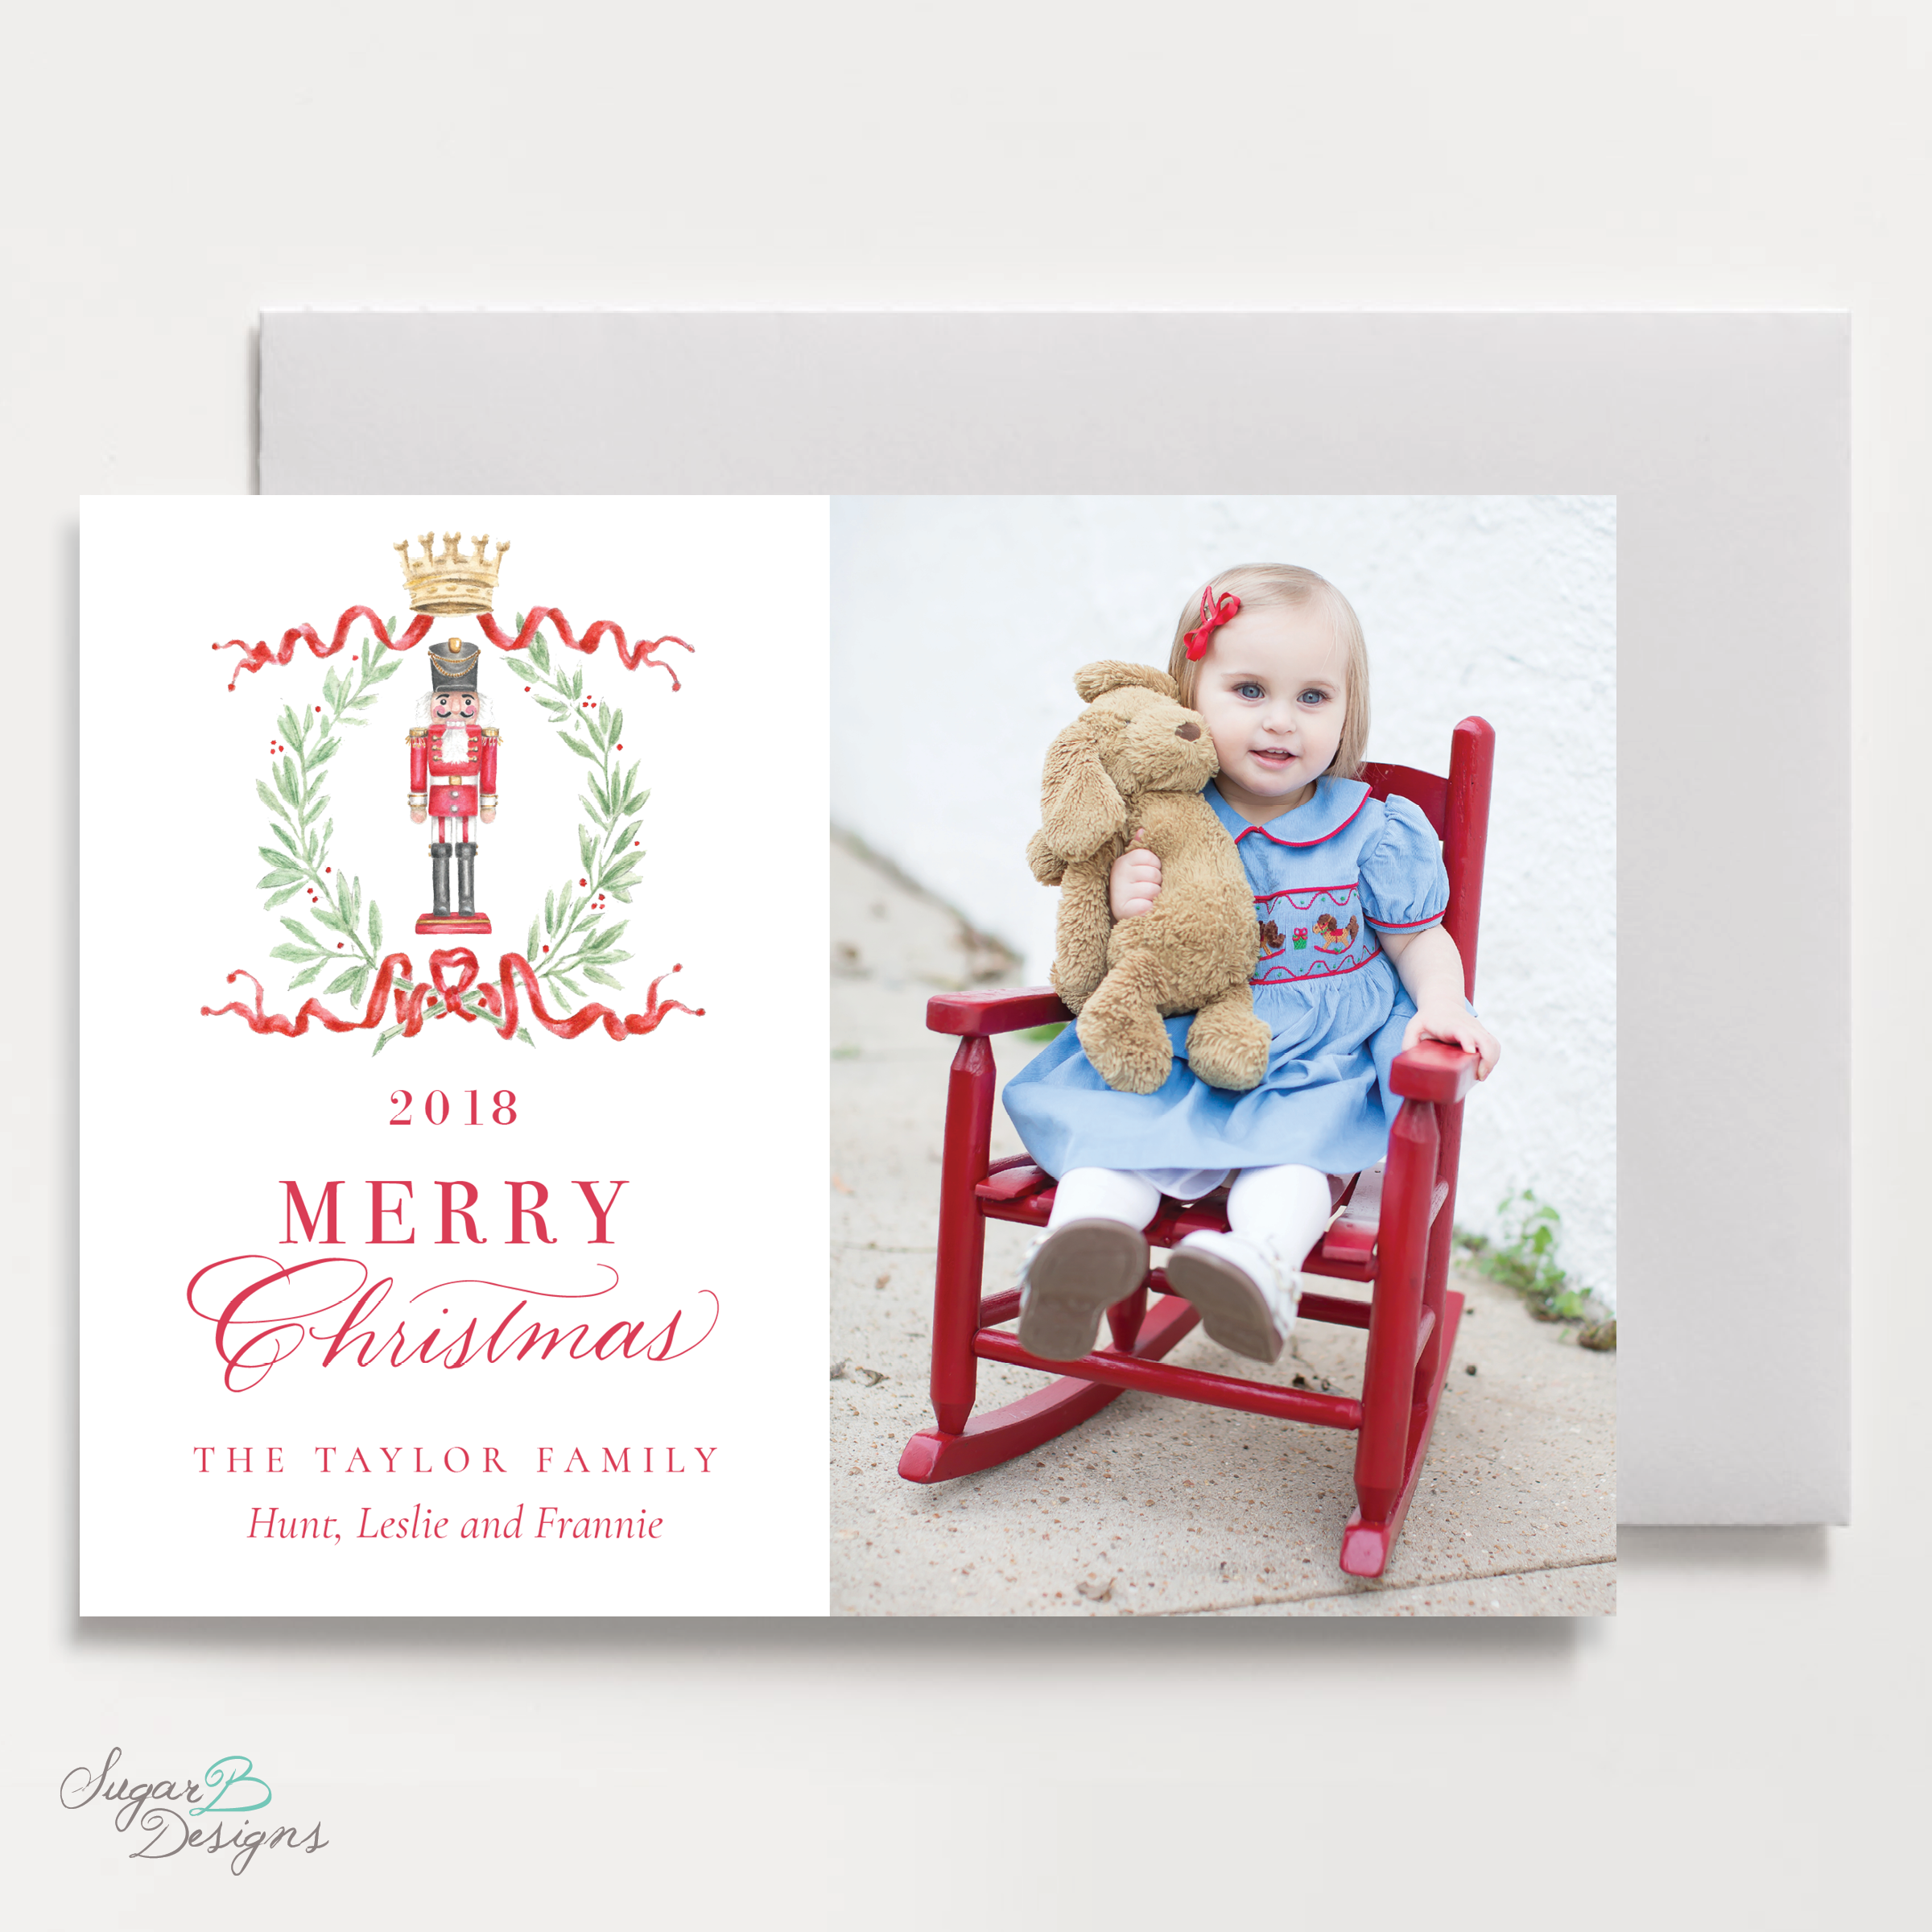 Nutcracker Royal Wreath Landscape front Christmas Card by Sugar B Designs.png